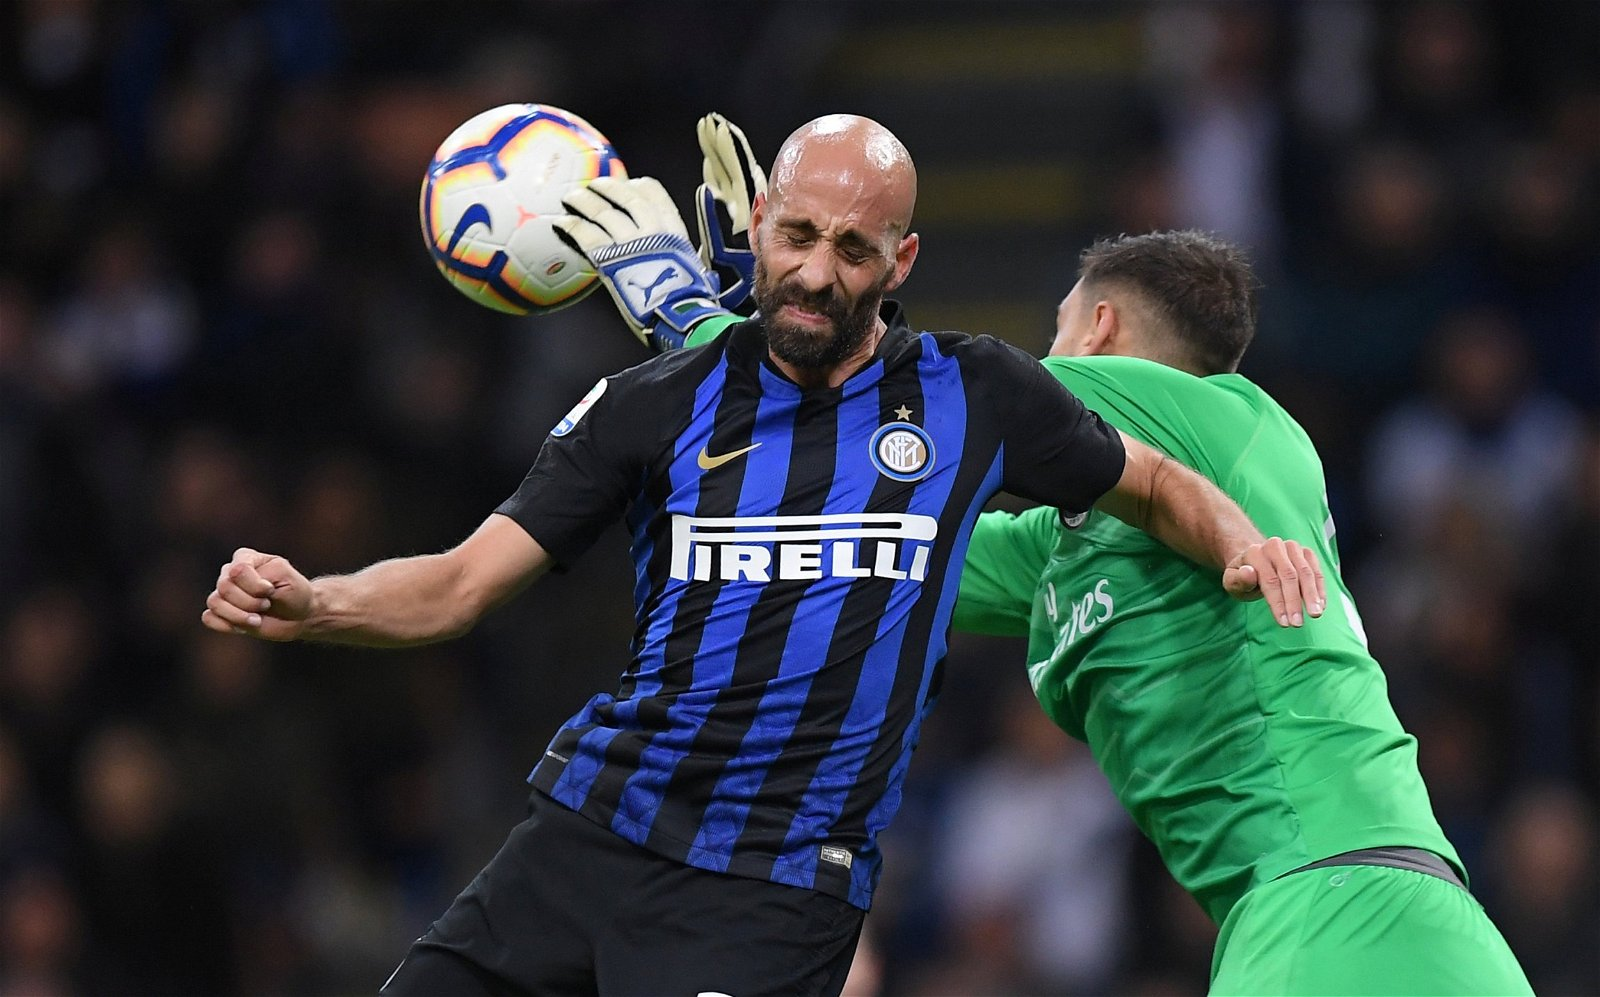 AC Milan goalkeeper Gianluigi Donnarumma punches the ball away vs Inter Milan - [Images] - The photos that indicate why Donnarumma would be a big Bernd Leno upgrade